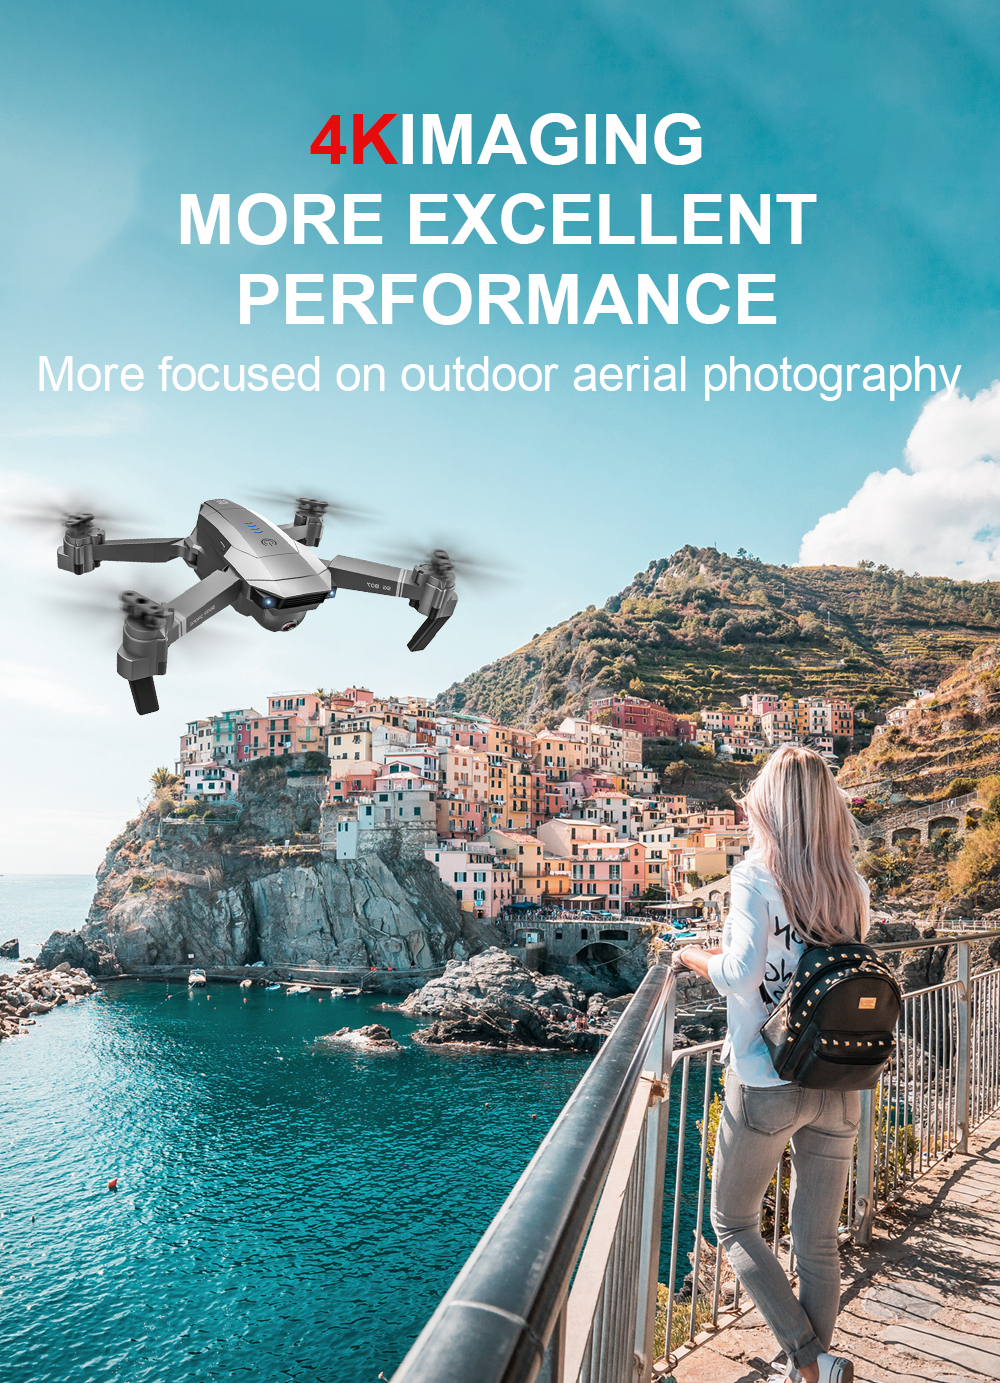 SG907 WIFI RC Quadcopter GPS Drone with 4K HD Dual Camera for Wide Angle Video Shooting 14